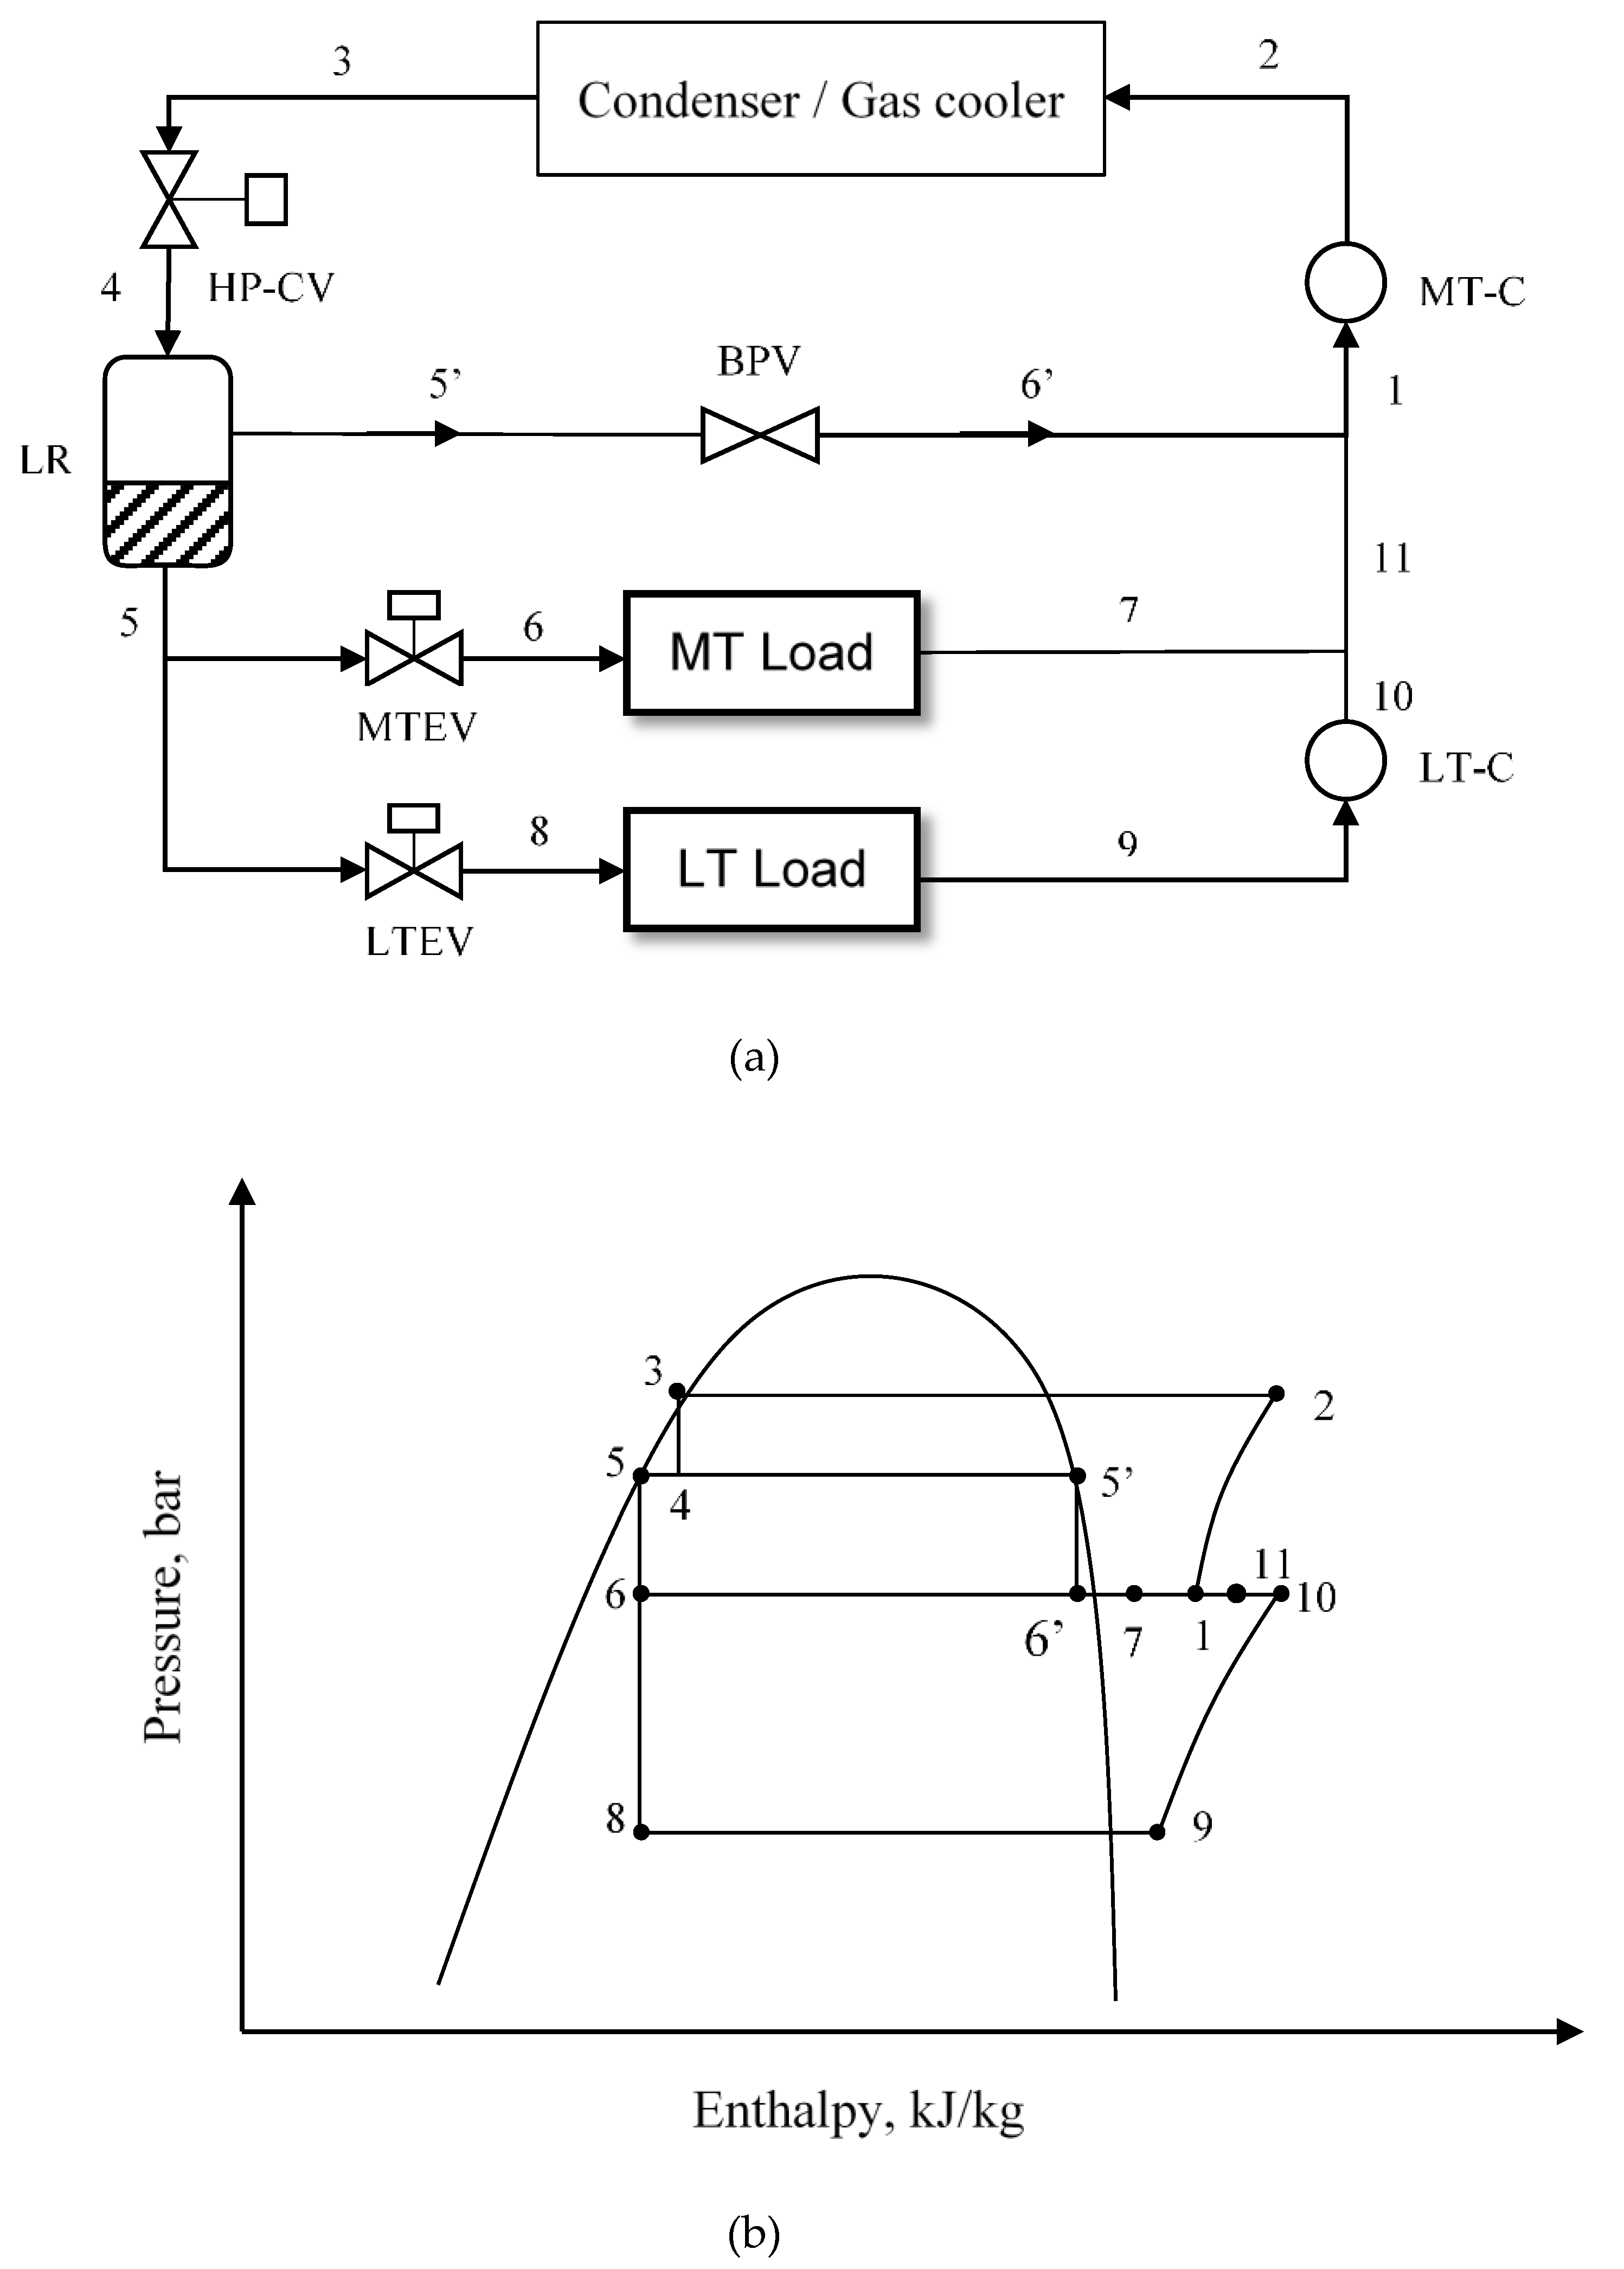 Energies | Free Full-Text | CO2 Refrigeration and Heat Pump ... on process symbols, refrigeration block diagram symbols, refrigeration wiring diagrams, latent heat, air handler, refrigeration blueprints, refrigeration piping symbols, heat transfer, refrigeration schematic diagram, gas compressor, cooling tower, frozen food, hydraulic drawing symbols, refrigeration components symbols, refrigeration drawing symbols, air conditioning, refrigeration wiring symbols, food preservation, refrigeration system symbols, refrigeration valve symbol, reciprocating compressor, vapor-compression refrigeration,